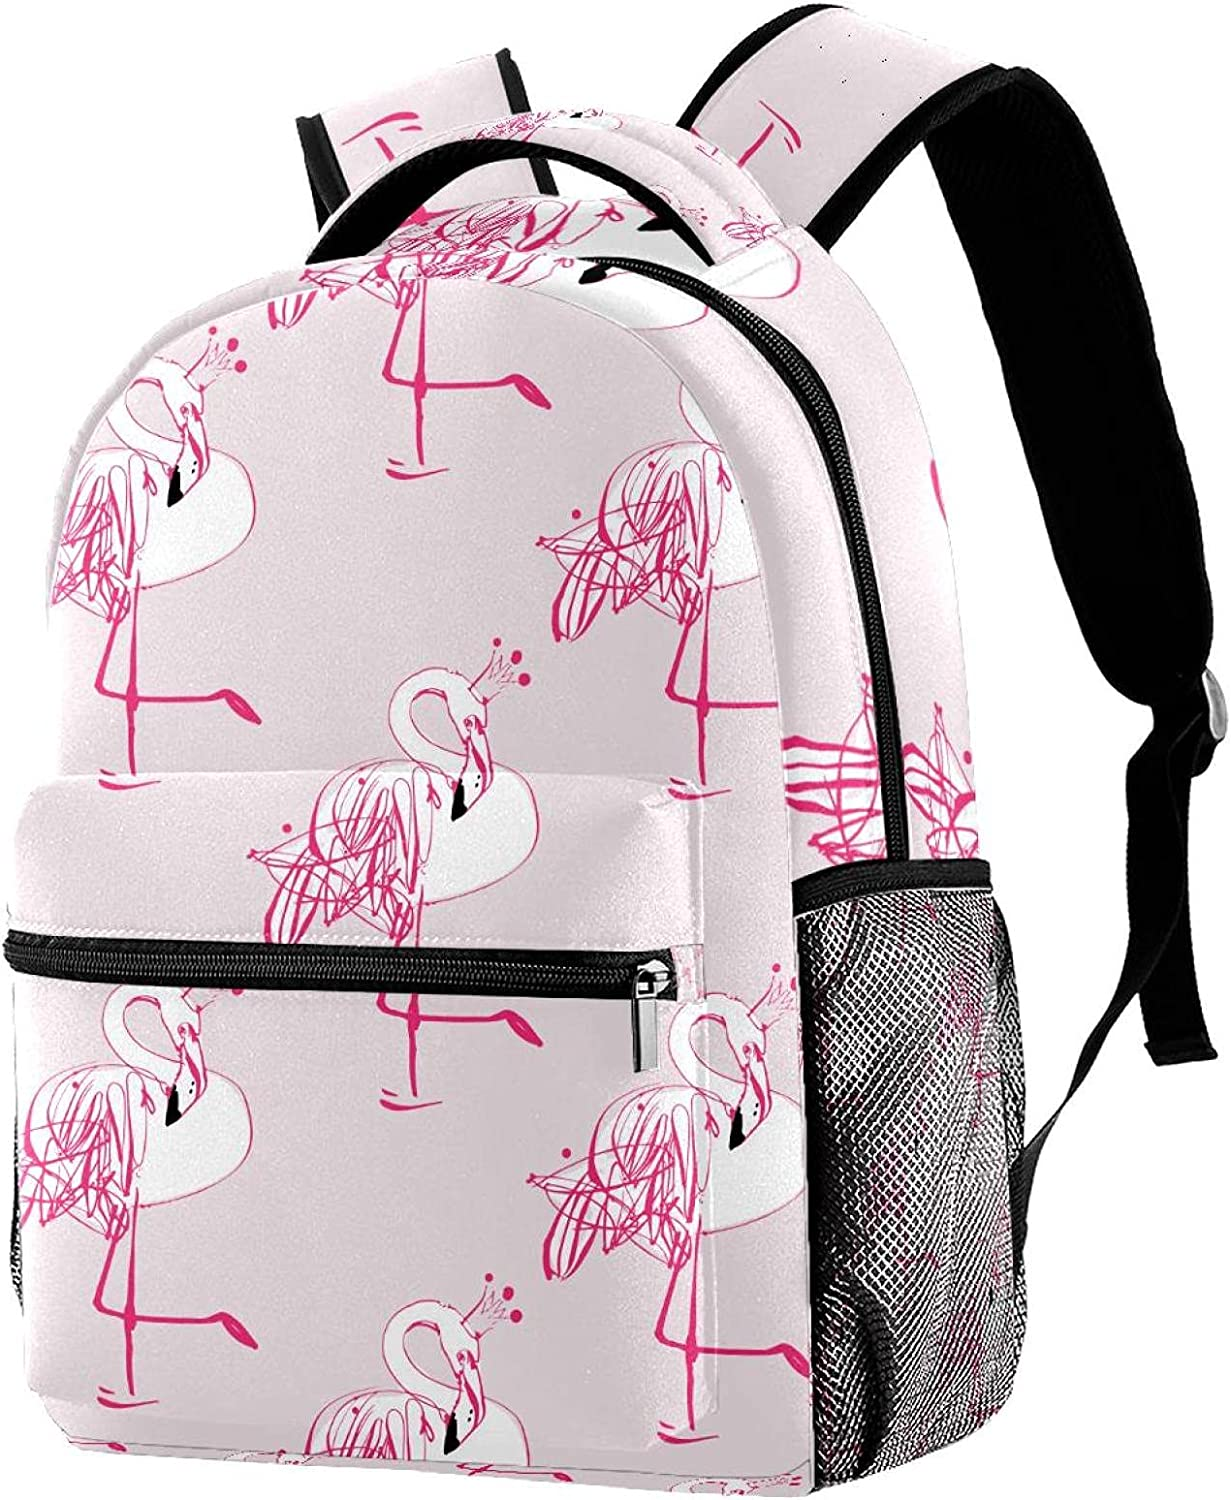 Max 51% OFF Travel Loptop Raleigh Mall Backpack with Adjustable Capa Strap Large Shoulder